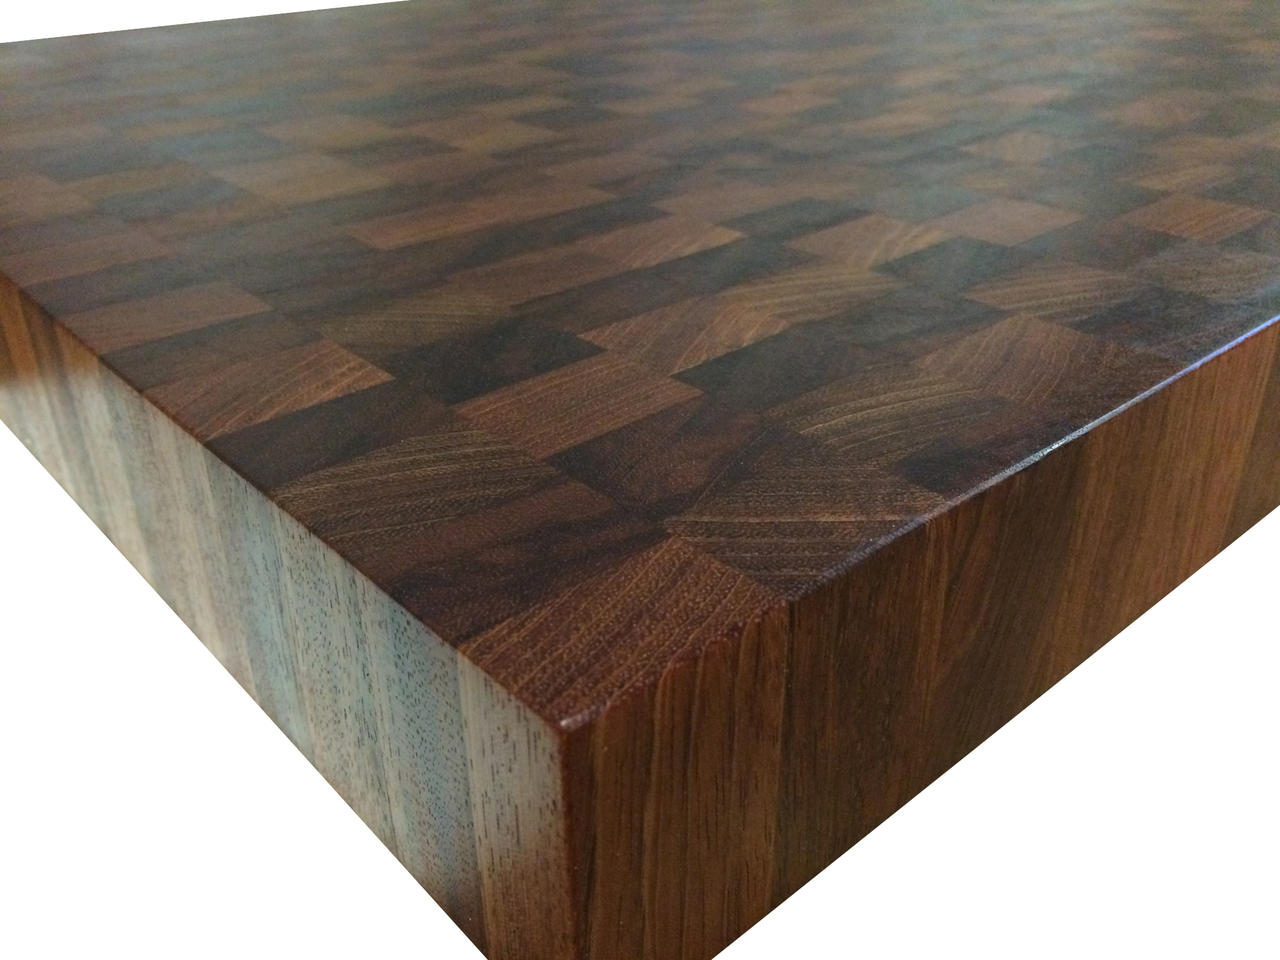 Armani Fine Woodworking End Grain Jatoba Butcher Block Countertop